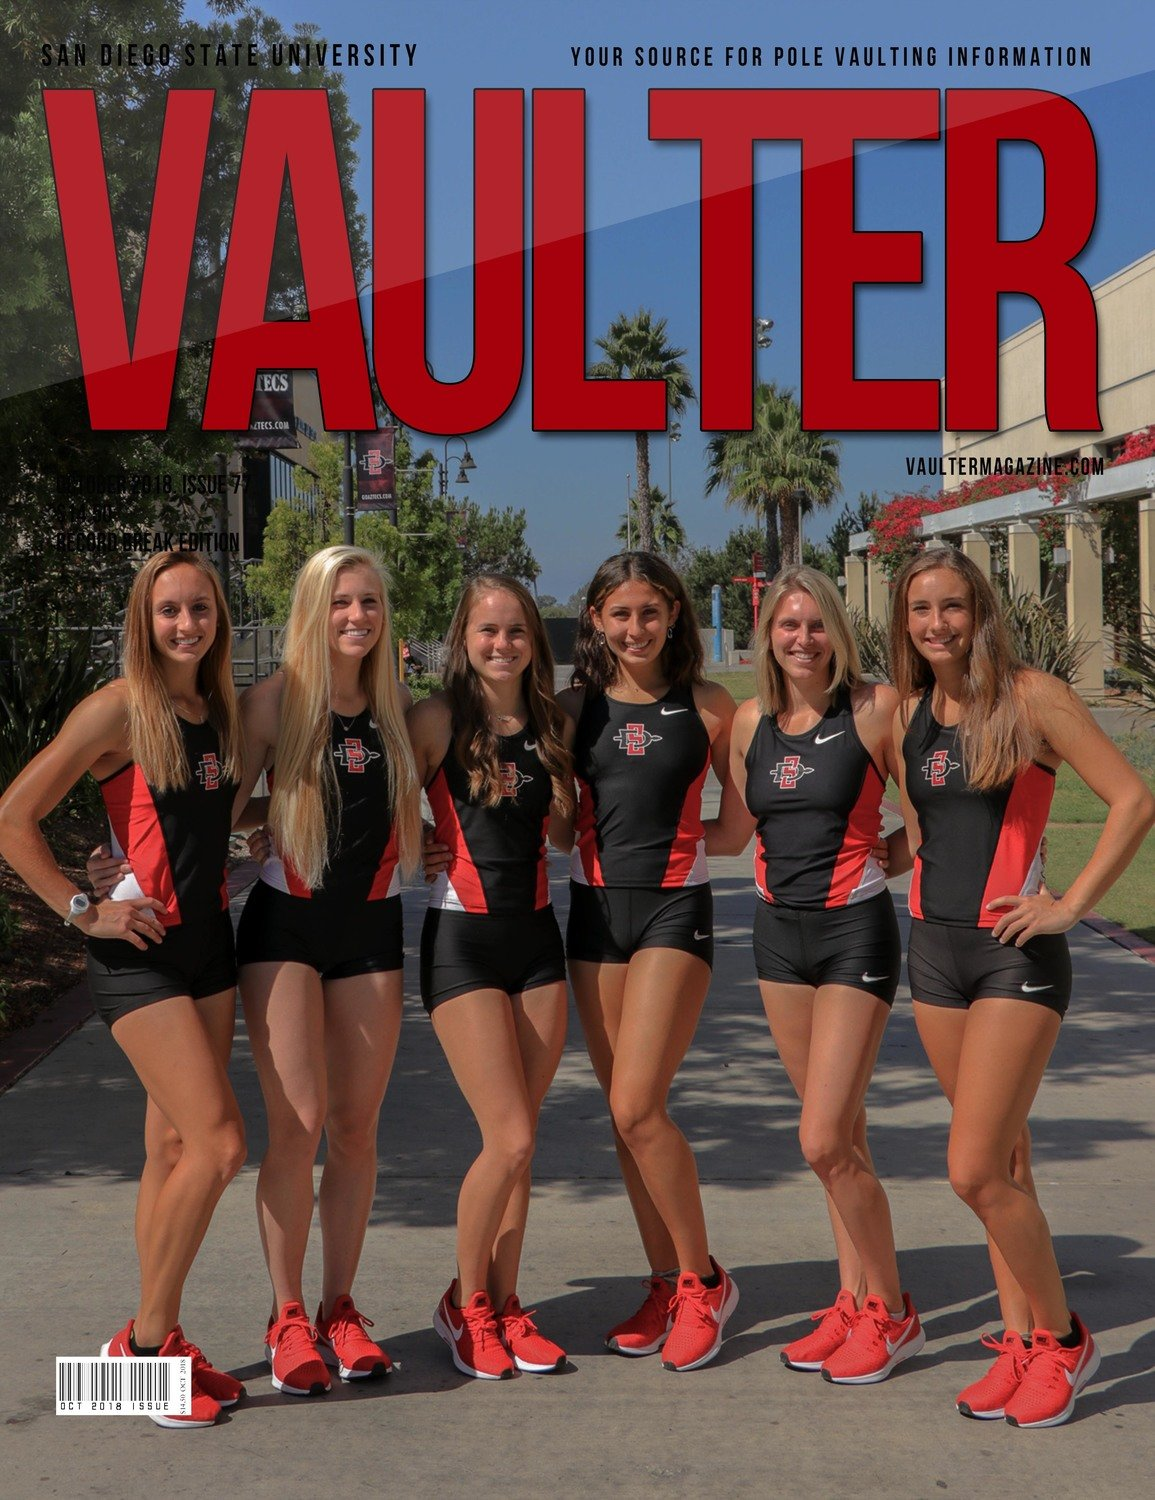 October 2018 San Diego State University Issue of Vaulter Magazine Cover - Digital Download